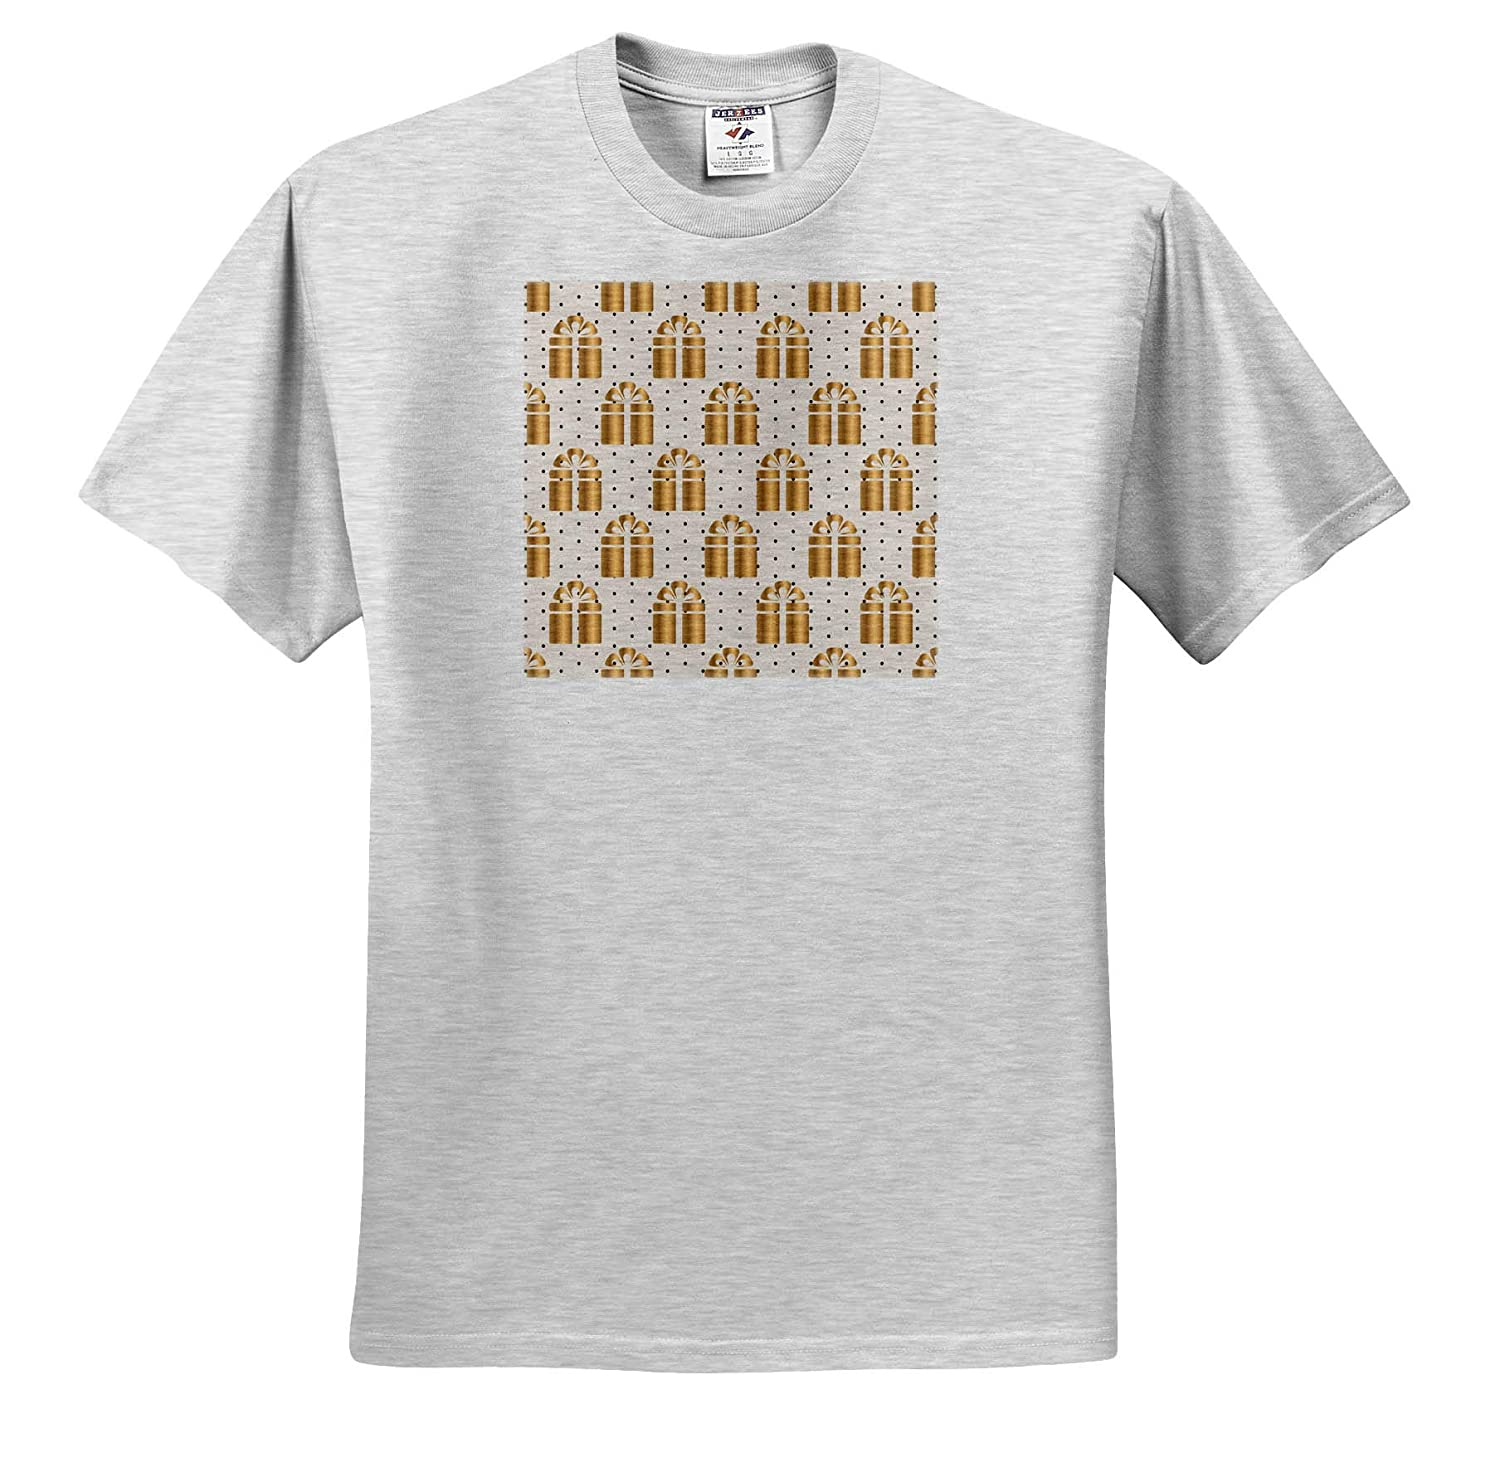 Pretty Image of Gold Presents On Polka Dots Pattern Christmas 3dRose Anne Marie Baugh Adult T-Shirt XL ts/_318471